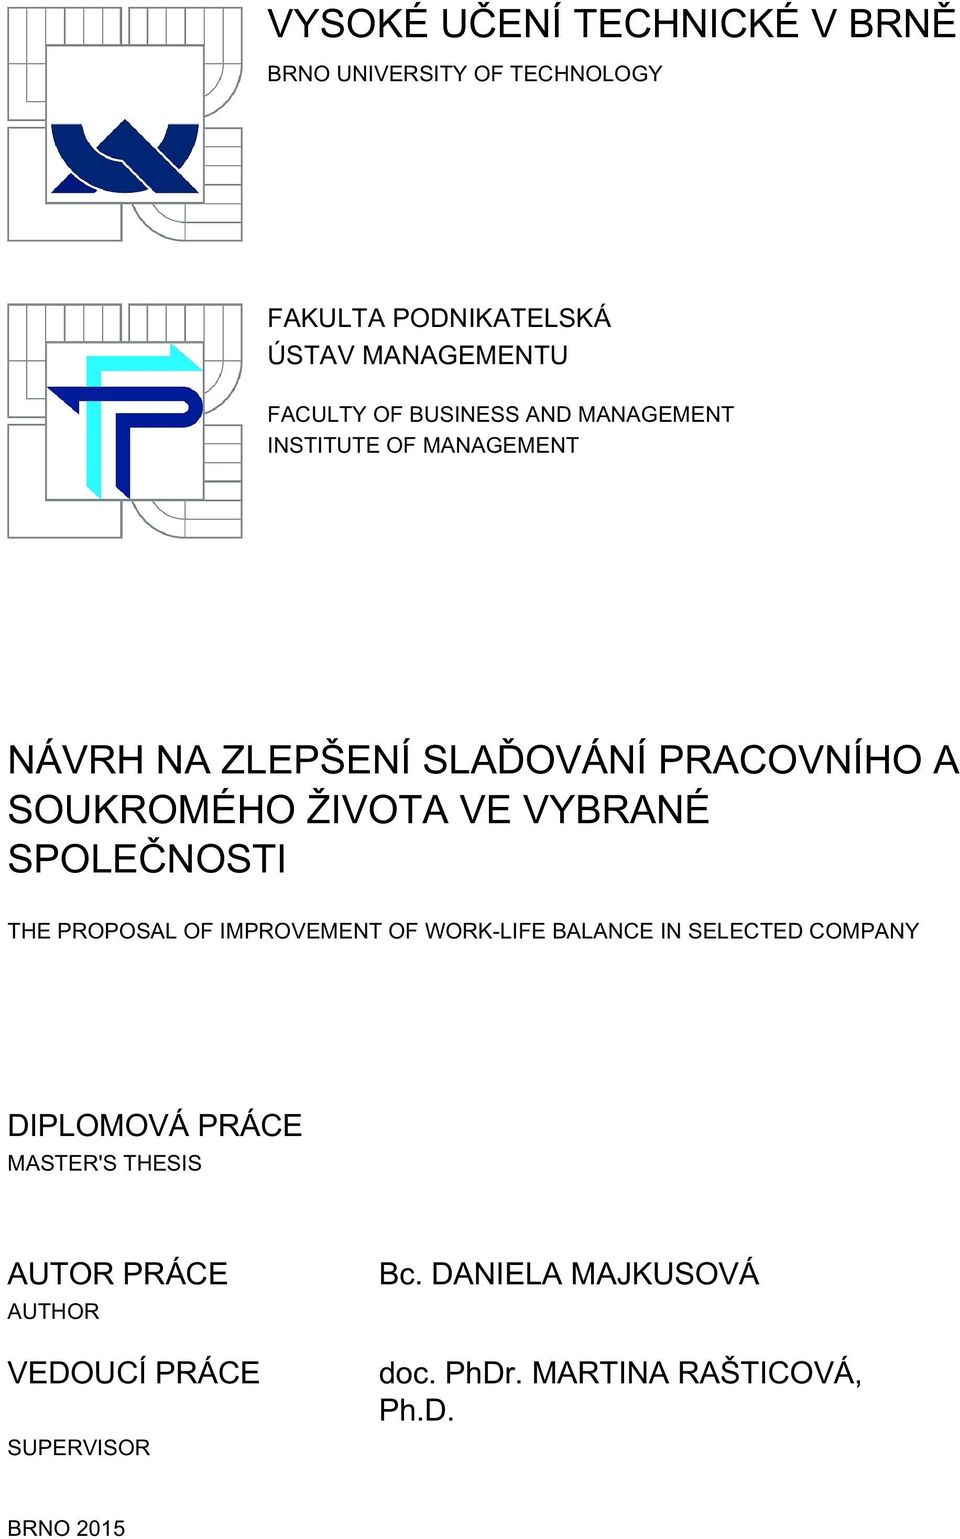 VYBRANÉ SPOLEČNOSTI THE PROPOSAL OF IMPROVEMENT OF WORK-LIFE BALANCE IN SELECTED COMPANY DIPLOMOVÁ PRÁCE MASTER'S